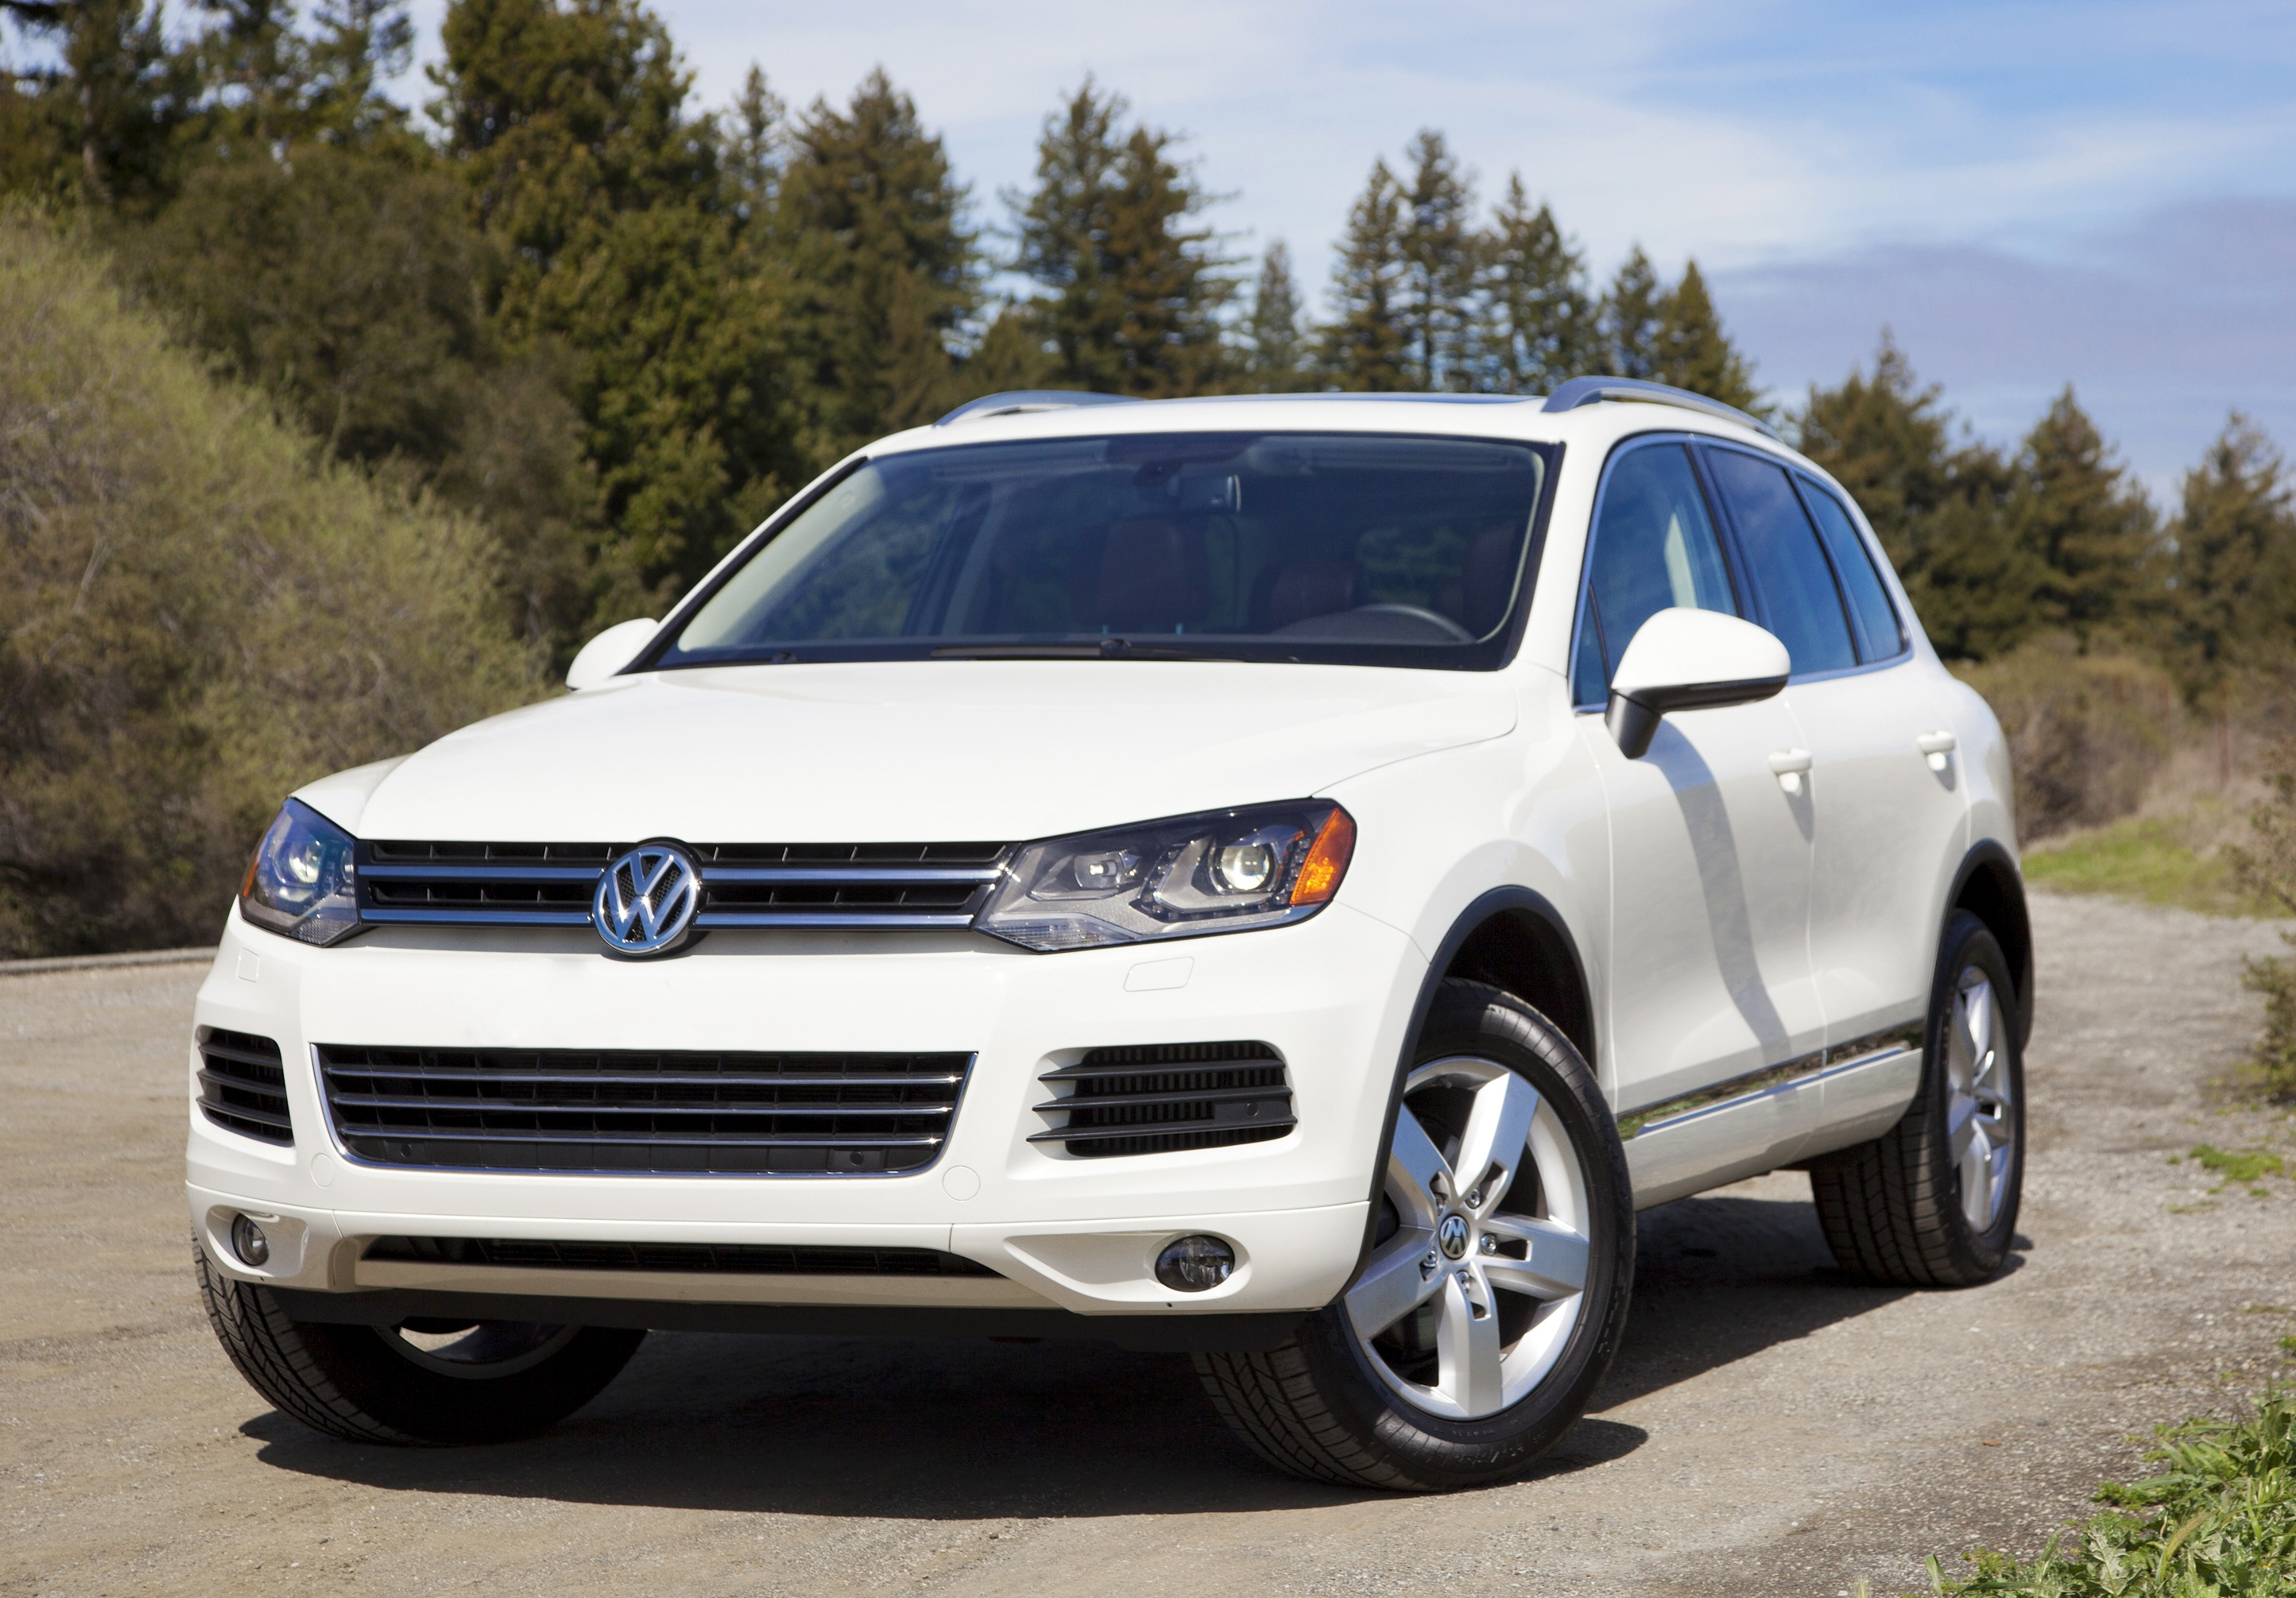 2013 volkswagen touareg vw review ratings specs. Black Bedroom Furniture Sets. Home Design Ideas